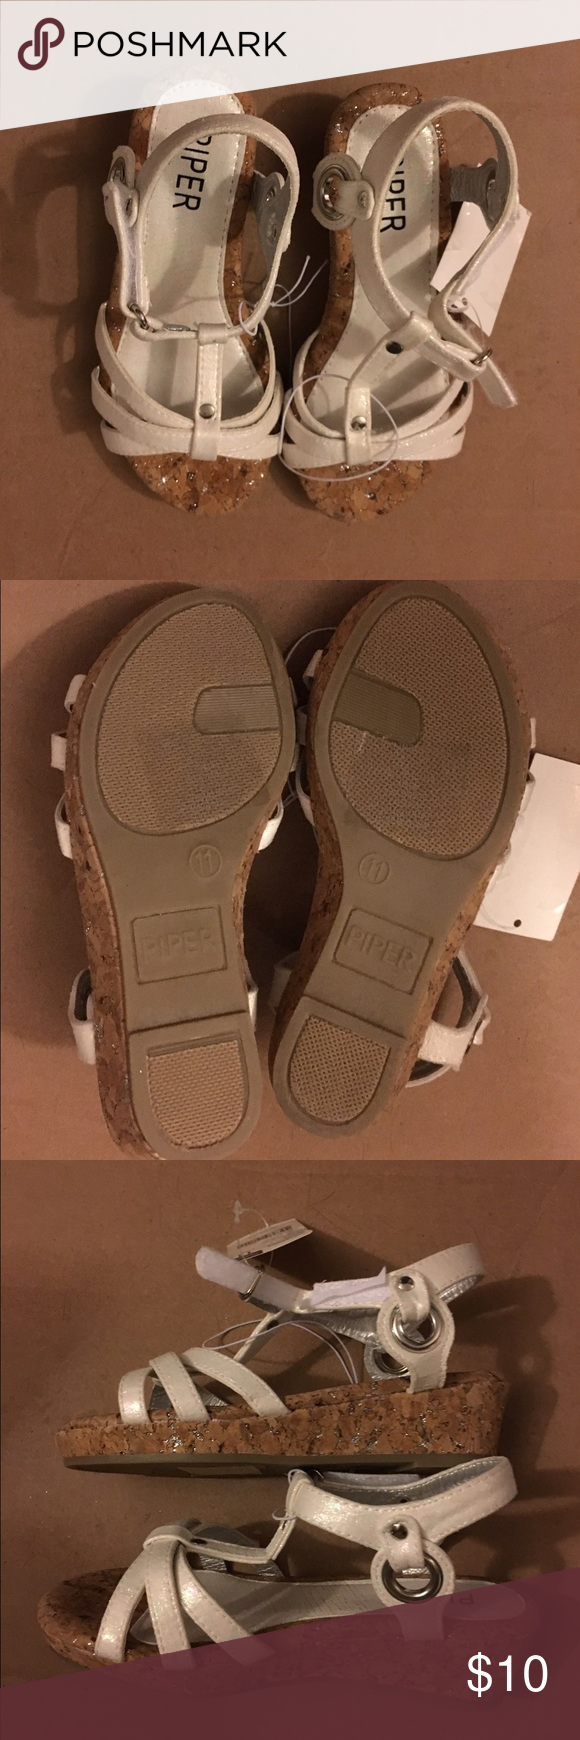 NWT Piper White Bina Wedge Toddler Sandals 11 Med NWT toddler girls Piper Bina Wedge White Sandals are size 11 Medium Width. They are white with cork like wedges brown color with silver glitter. Shoes have Velcro Closure and made in China of all man made materials. Piper Shoes Sandals & Flip Flops